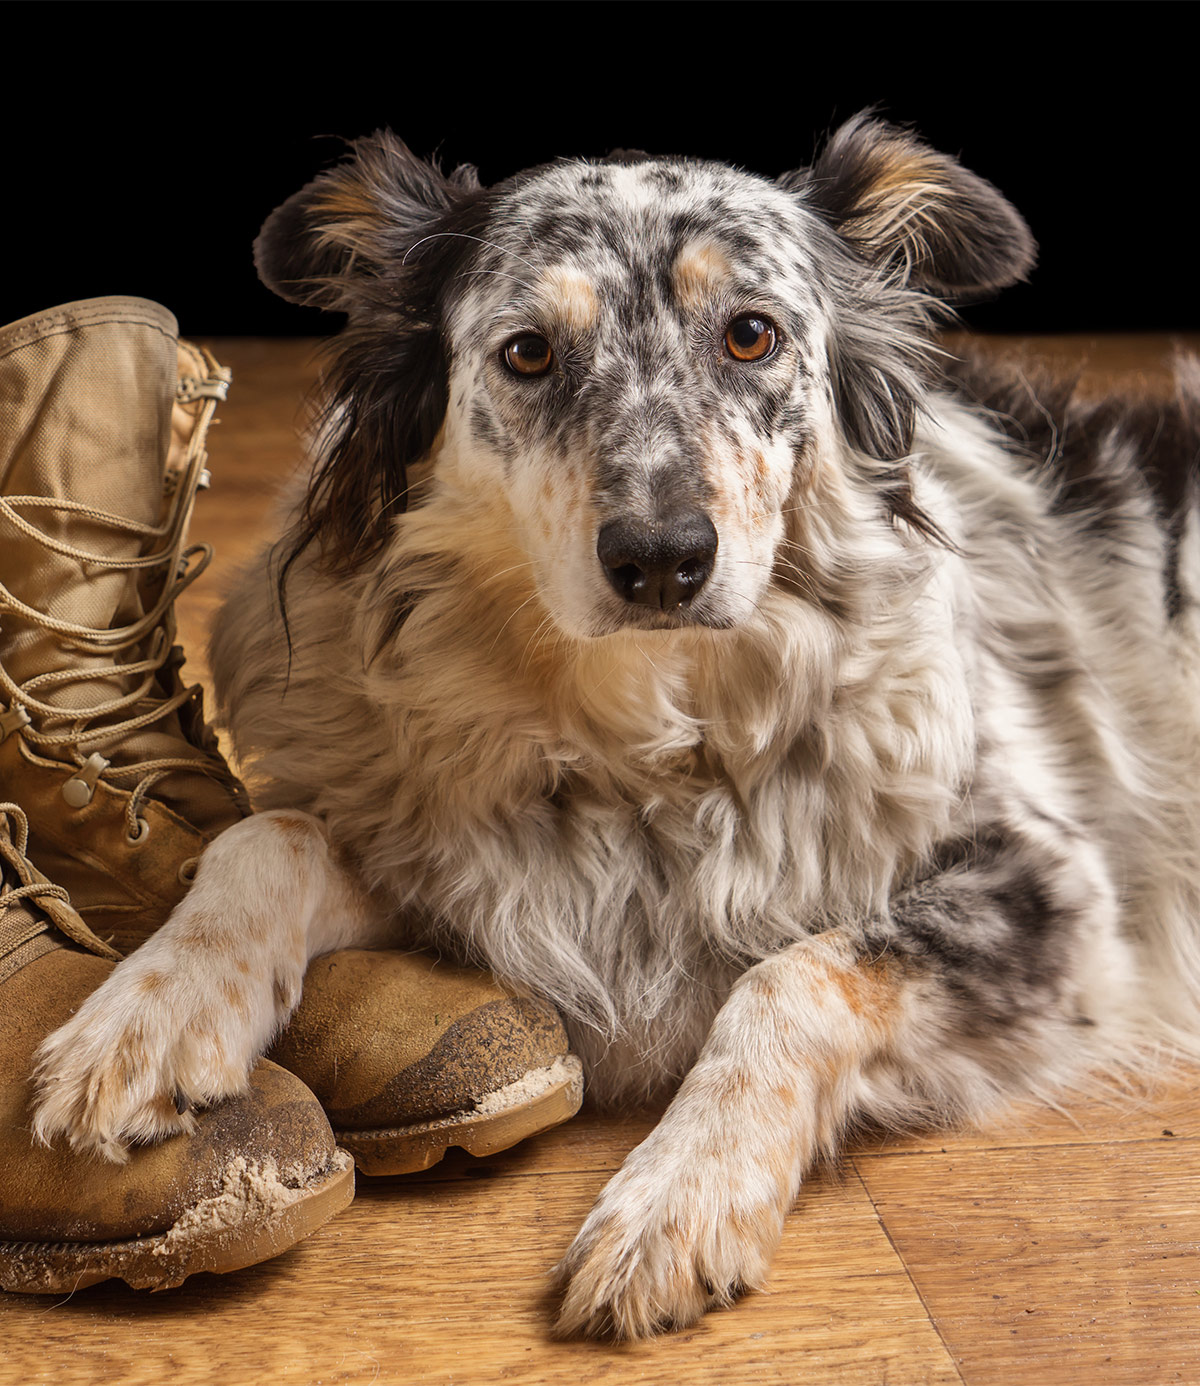 Border Collie Australian Shepherd Mix - Will This Be Your